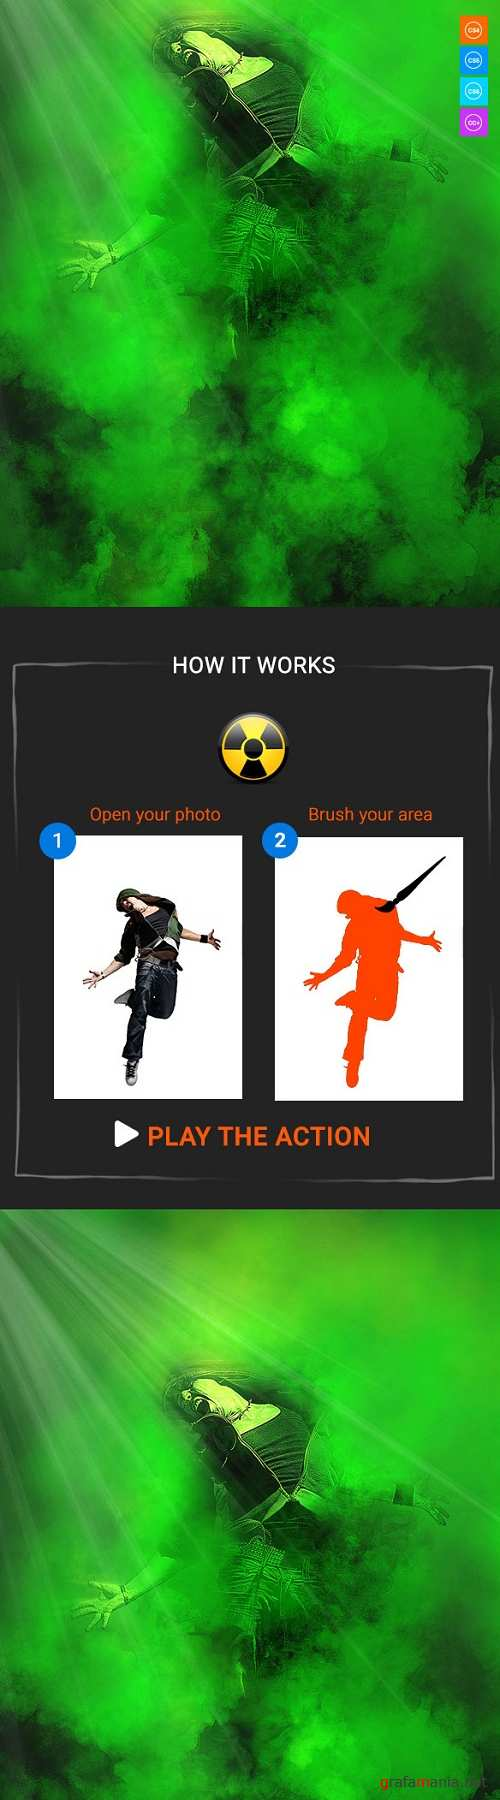 Radiation Photoshop Action - 20661302